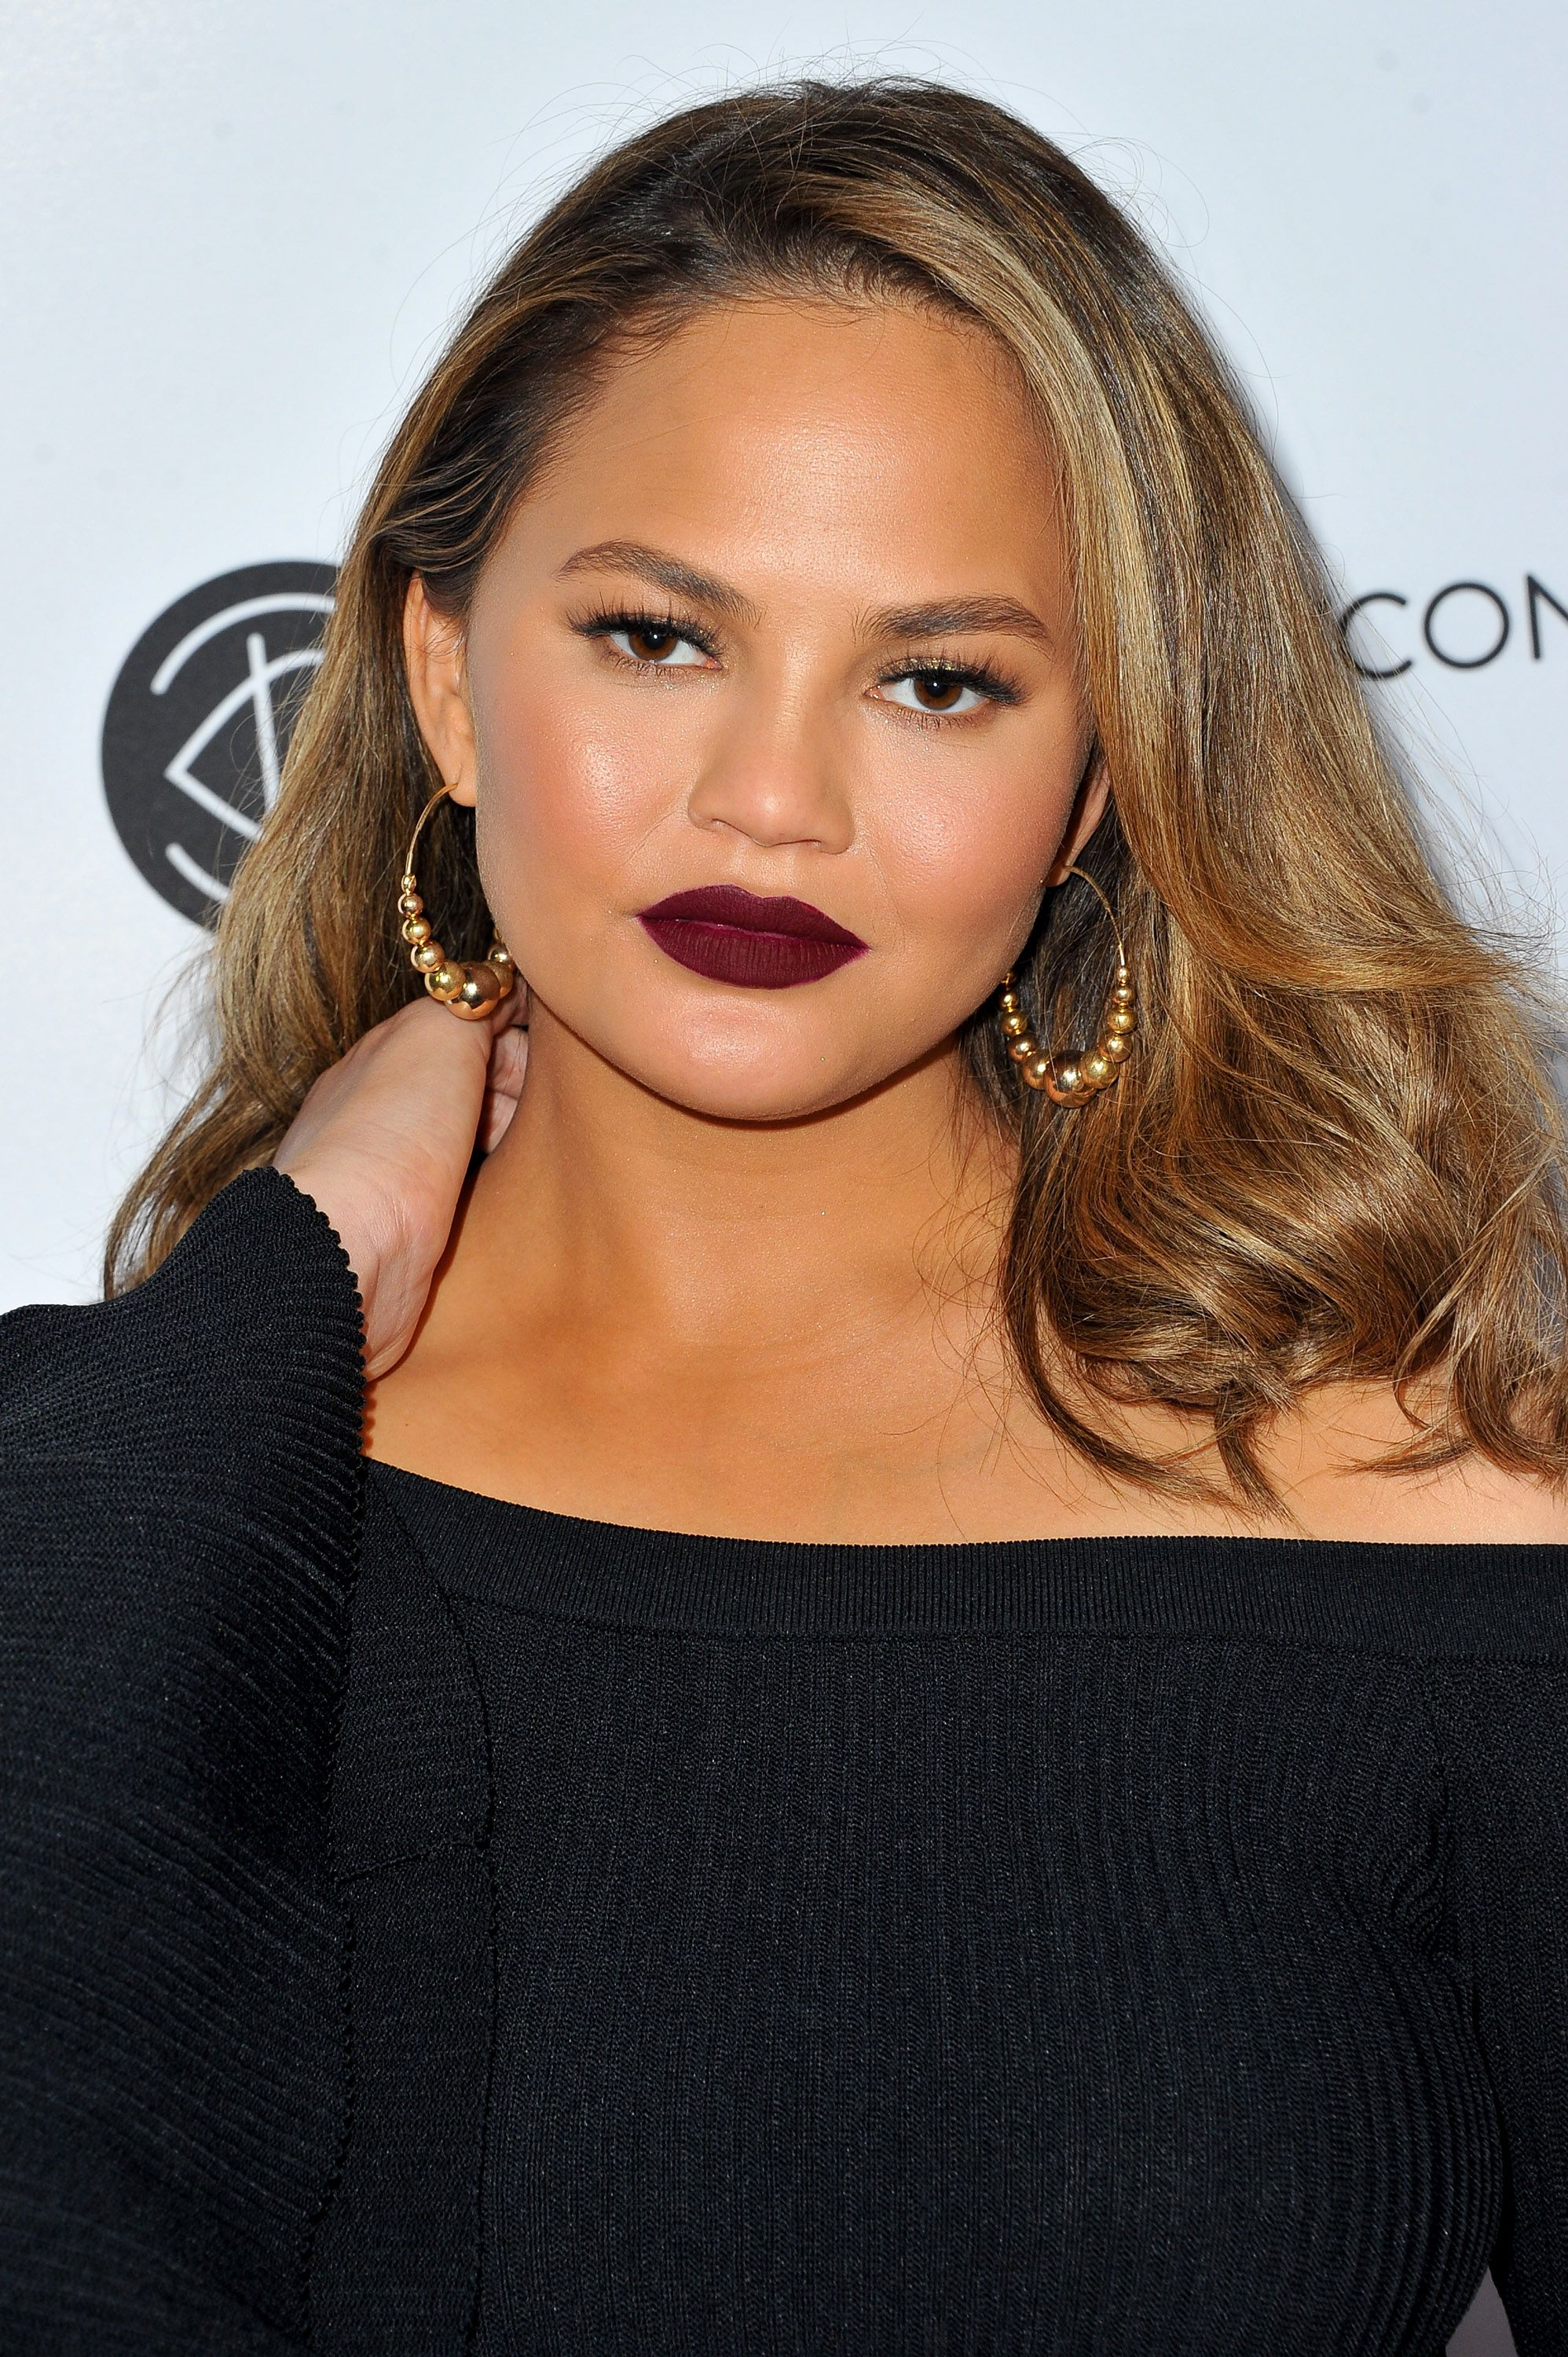 Model Chrissy Teigen at the 5th Annual Beautycon Festival Los Angeles   Photo: Getty Images